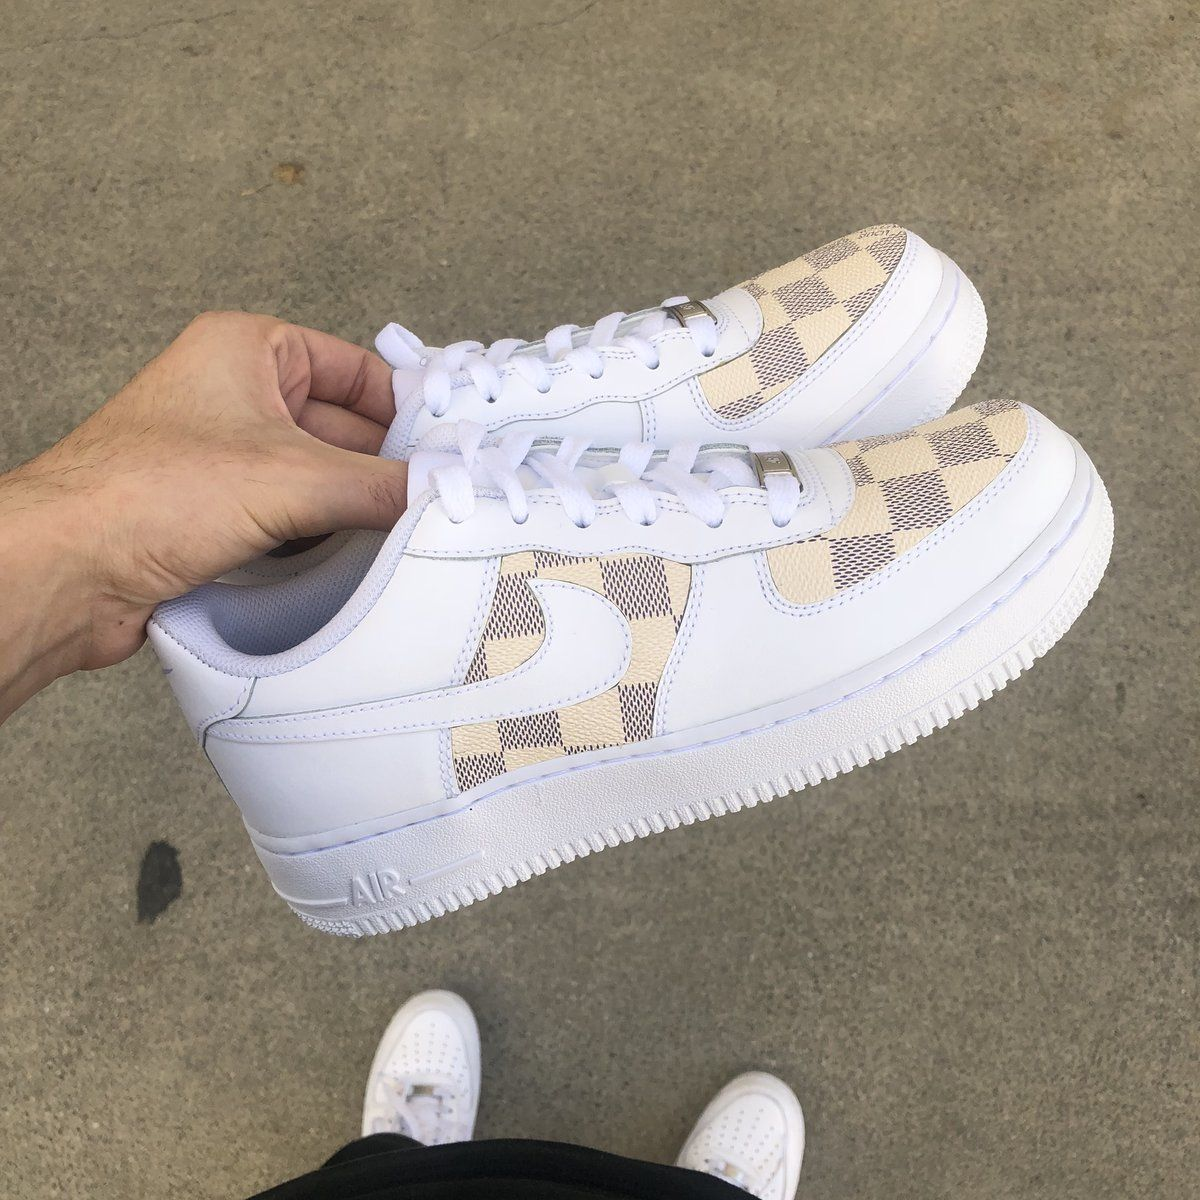 456d6dfee52 Nike Air Force 1 4th Of July | Nike's ✓ | Nike air force, Sneakers ...